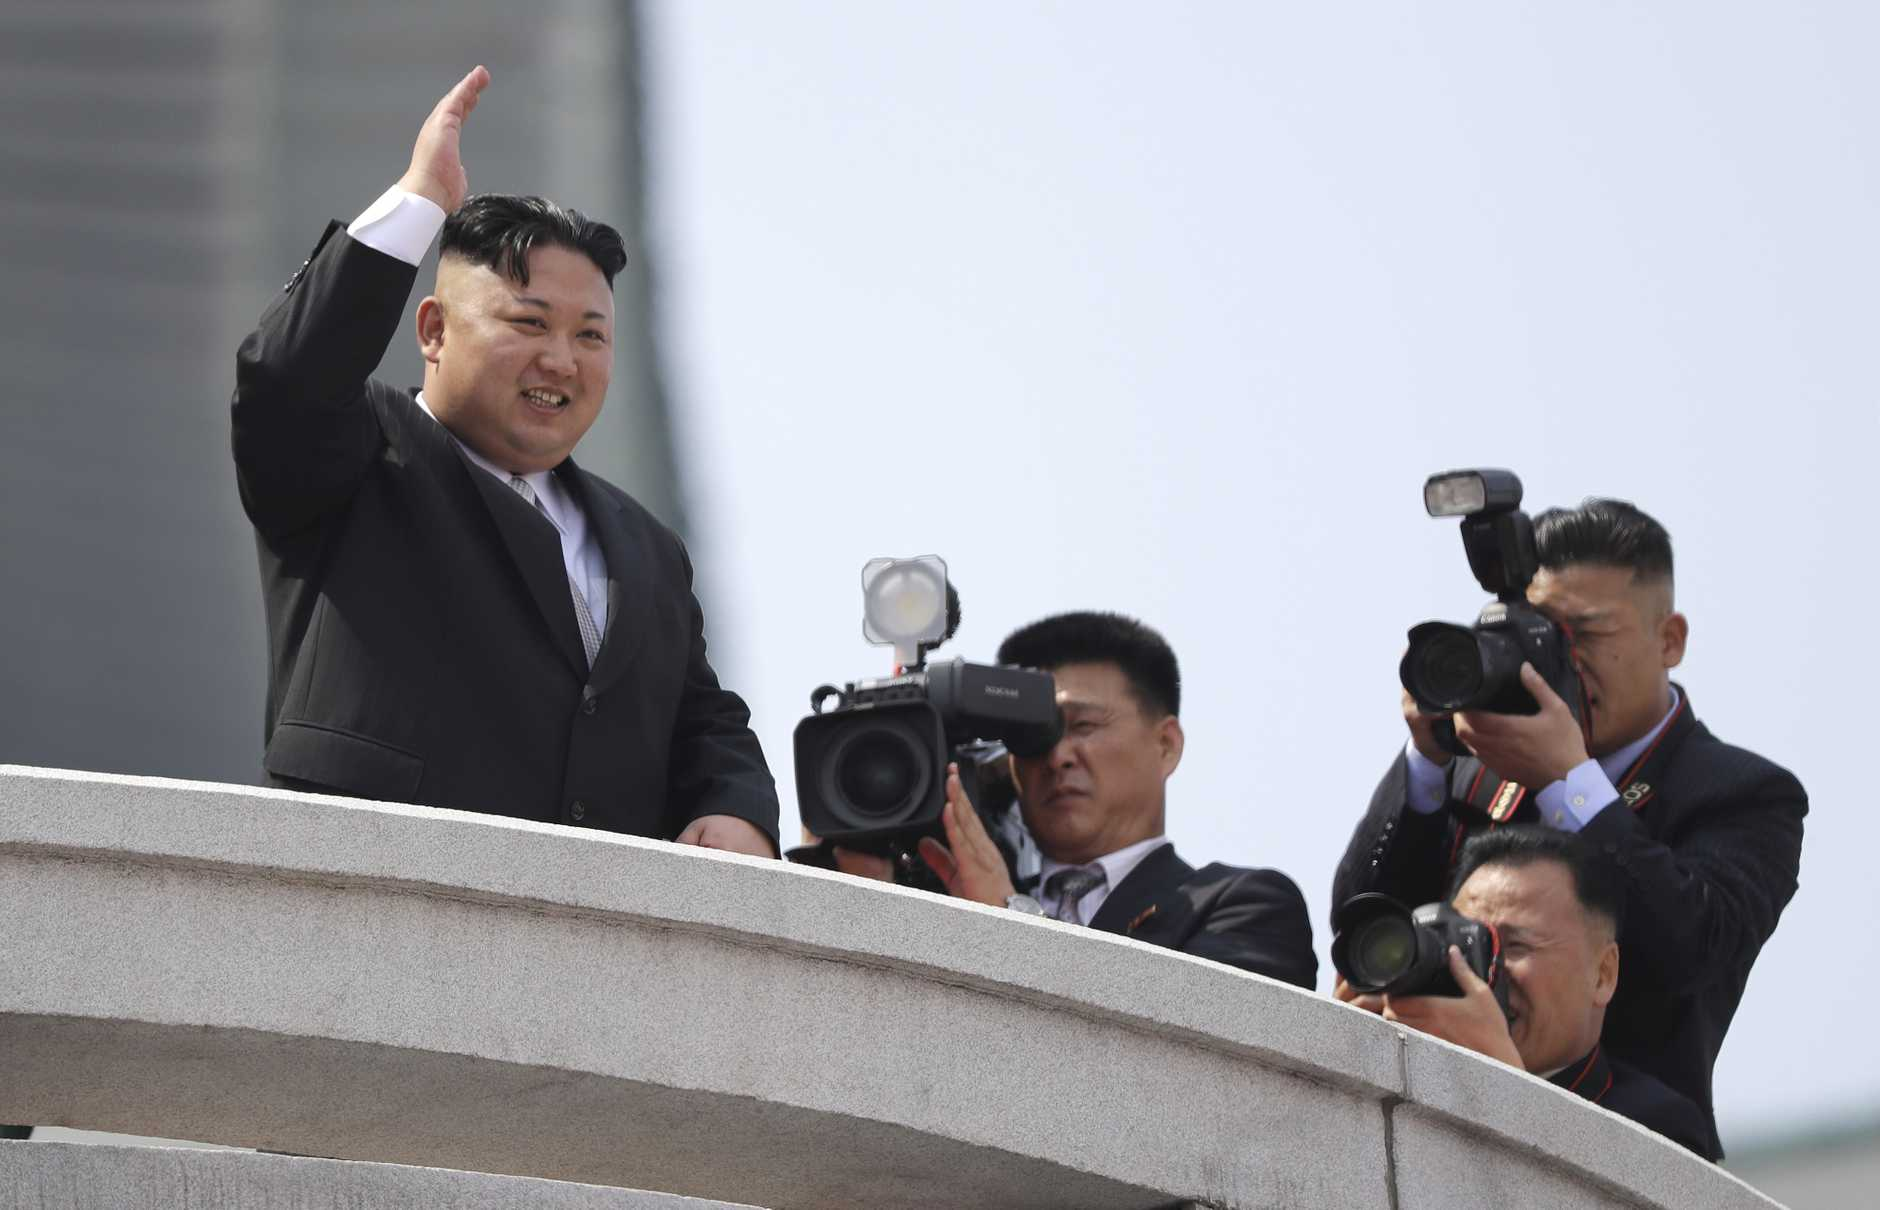 North Korean leader Kim Jong Un waves during a military parade on Saturday, April 15, 2017, in Pyongyang, North Korea to celebrate the 105th birth anniversary of Kim Il Sung, the country's late founder and grandfather of current ruler Kim Jong Un. (AP Photo/Wong Maye-E)